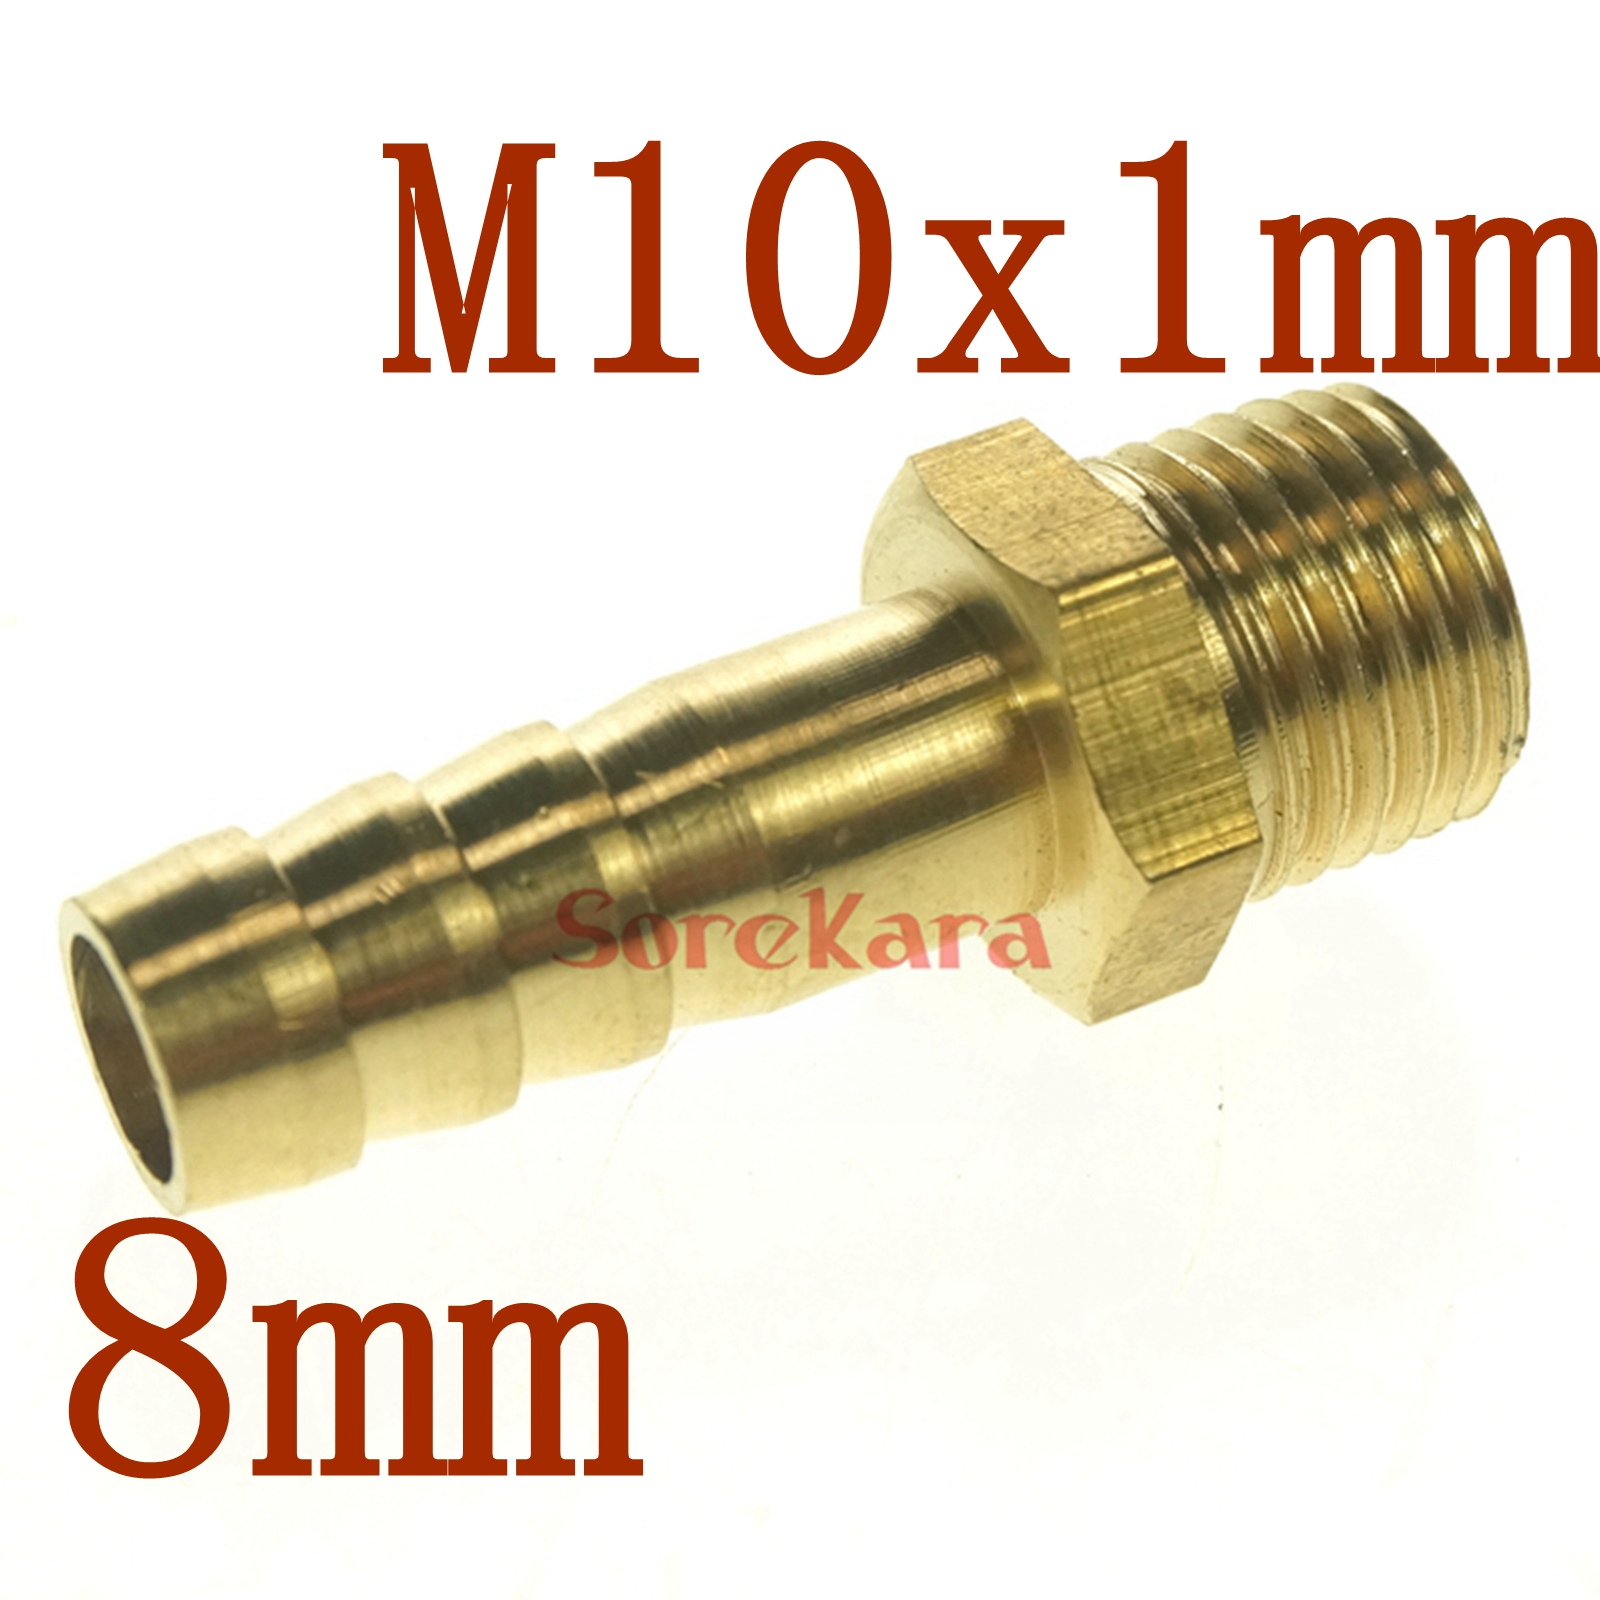 LOT 5 Hose Barb I/D 8mm X M10x1mm Metric Male Thread Brass Coupler Splicer Connector Fitting For Fuel Gas Water